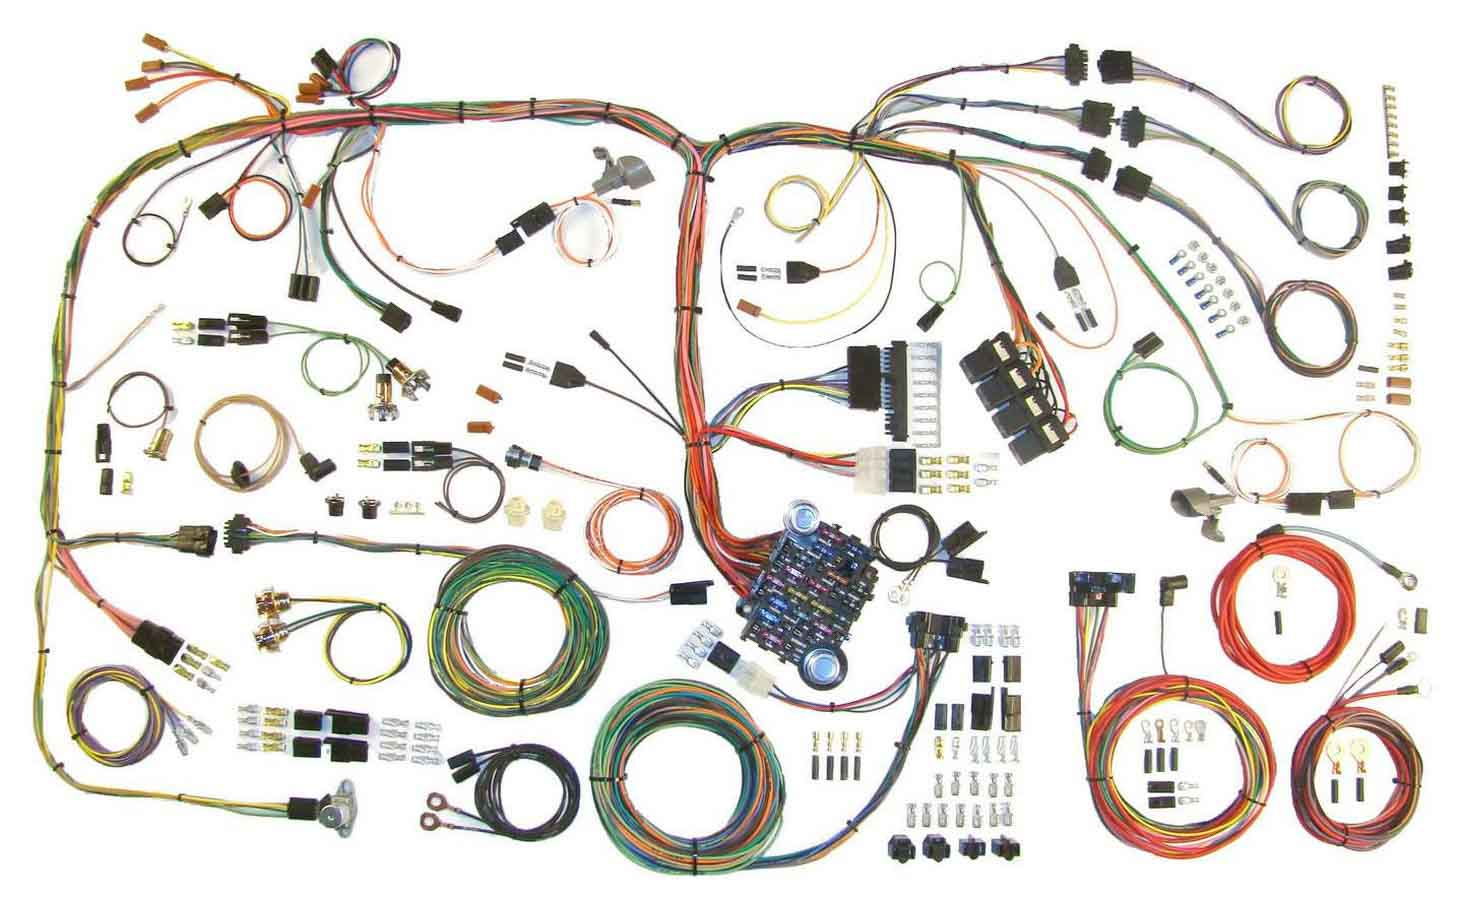 Shop For American Autowire Racecar Engineering Classic Car Wiring Harness Aaw 510289 1